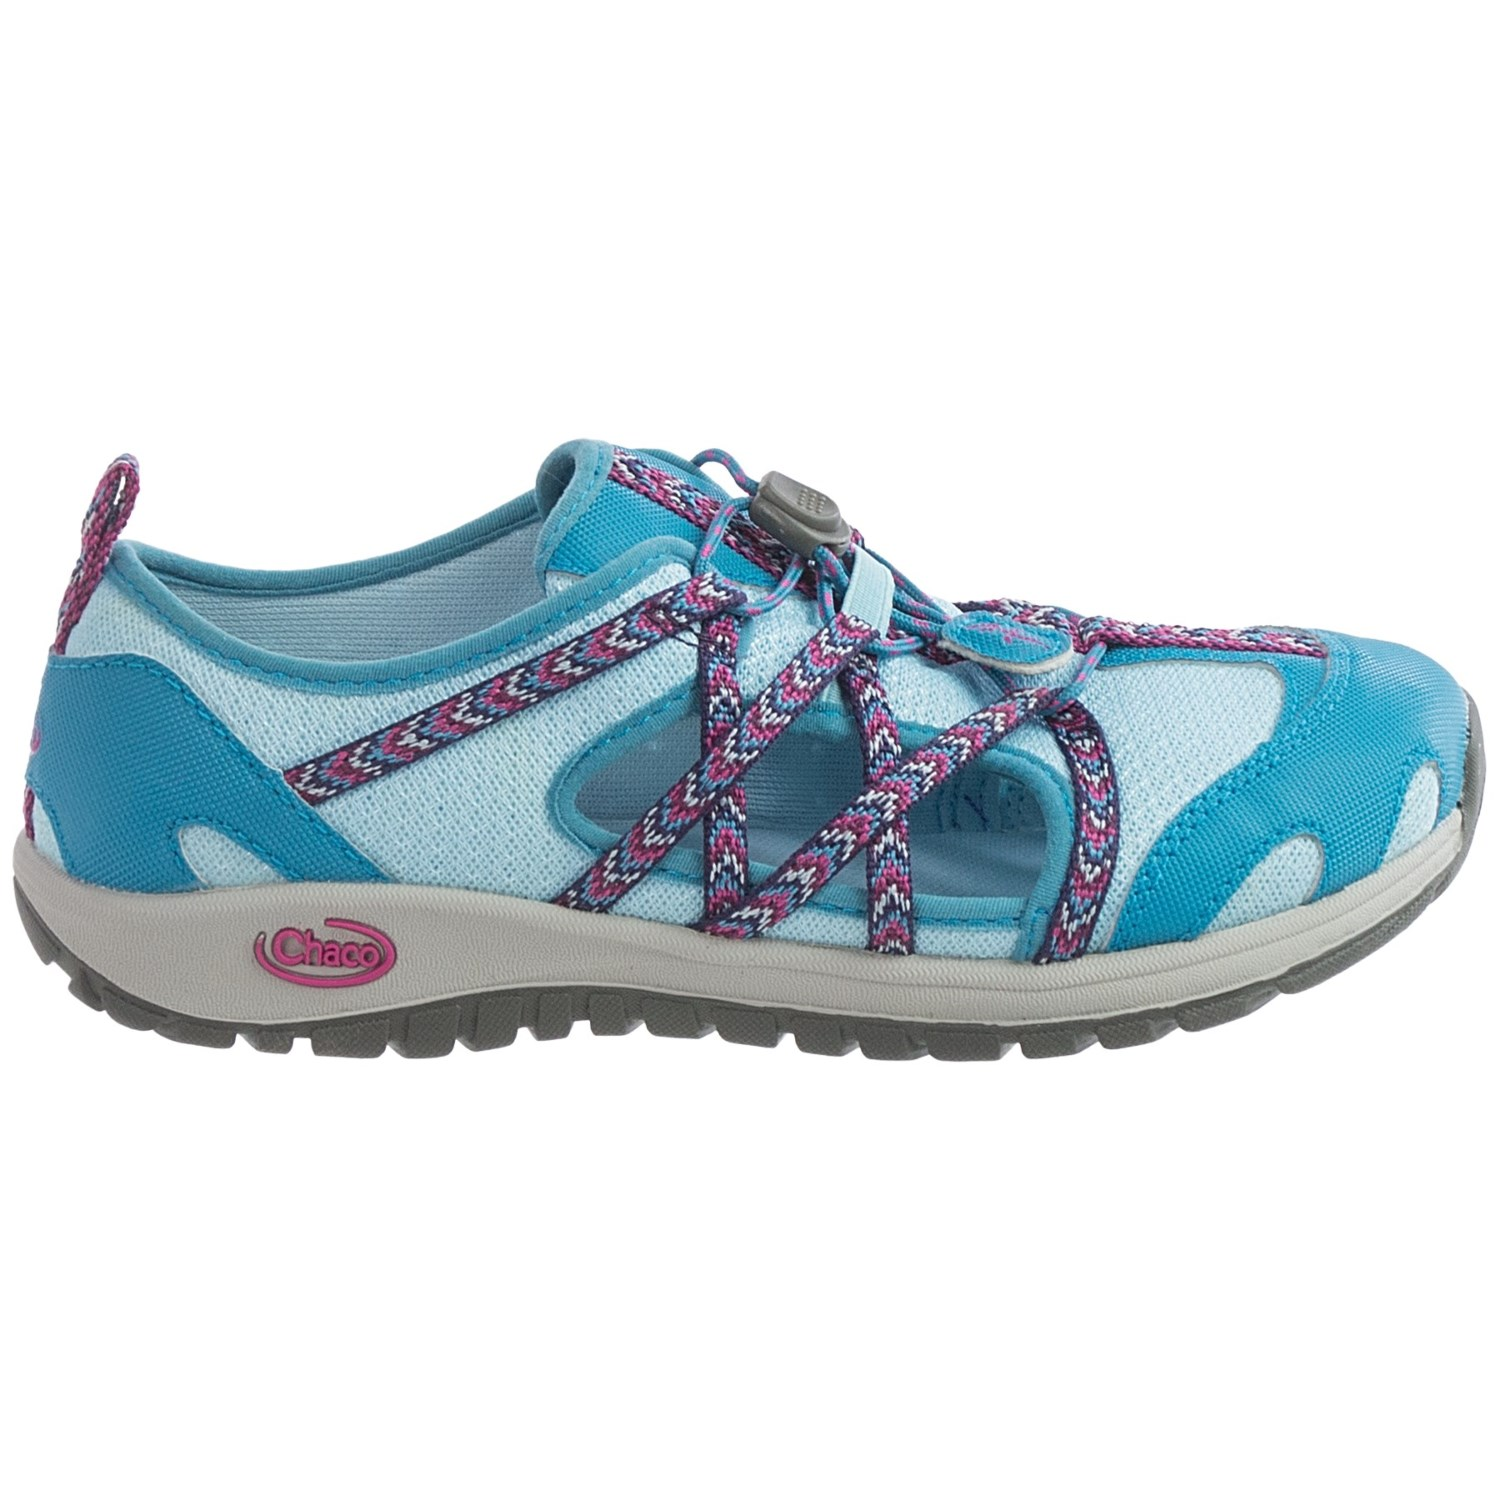 Let kids explore the fun of the outdoors with shoes built for land and sea. Shop innovative kids' water shoes for active boys and girls at Stride Rite.